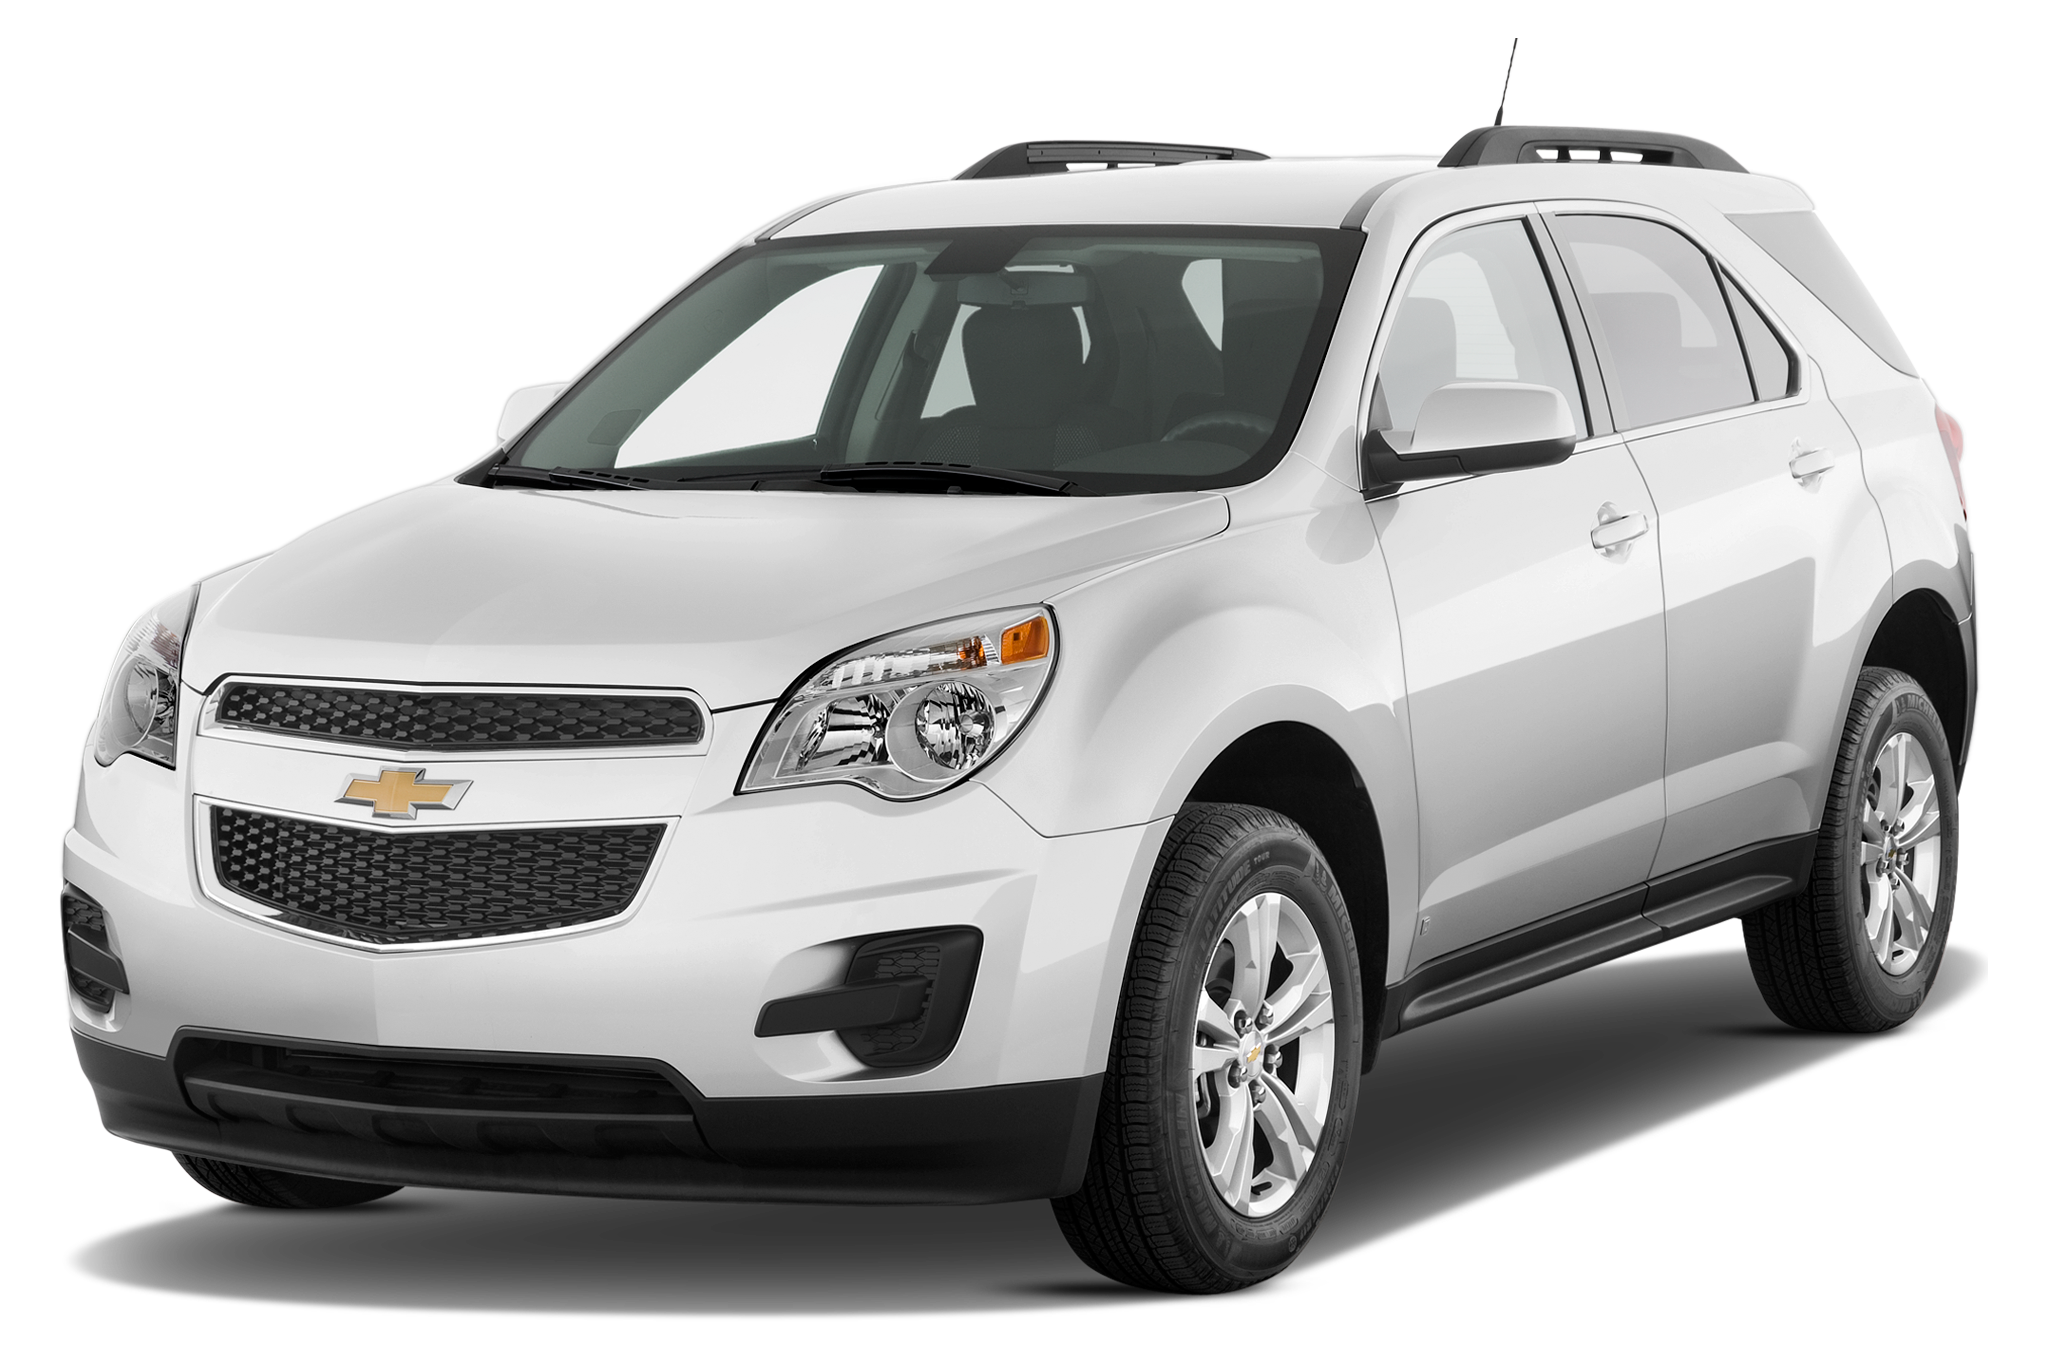 2014 Chevrolet Equinox 2lt Suv Angular Front Cool Review About